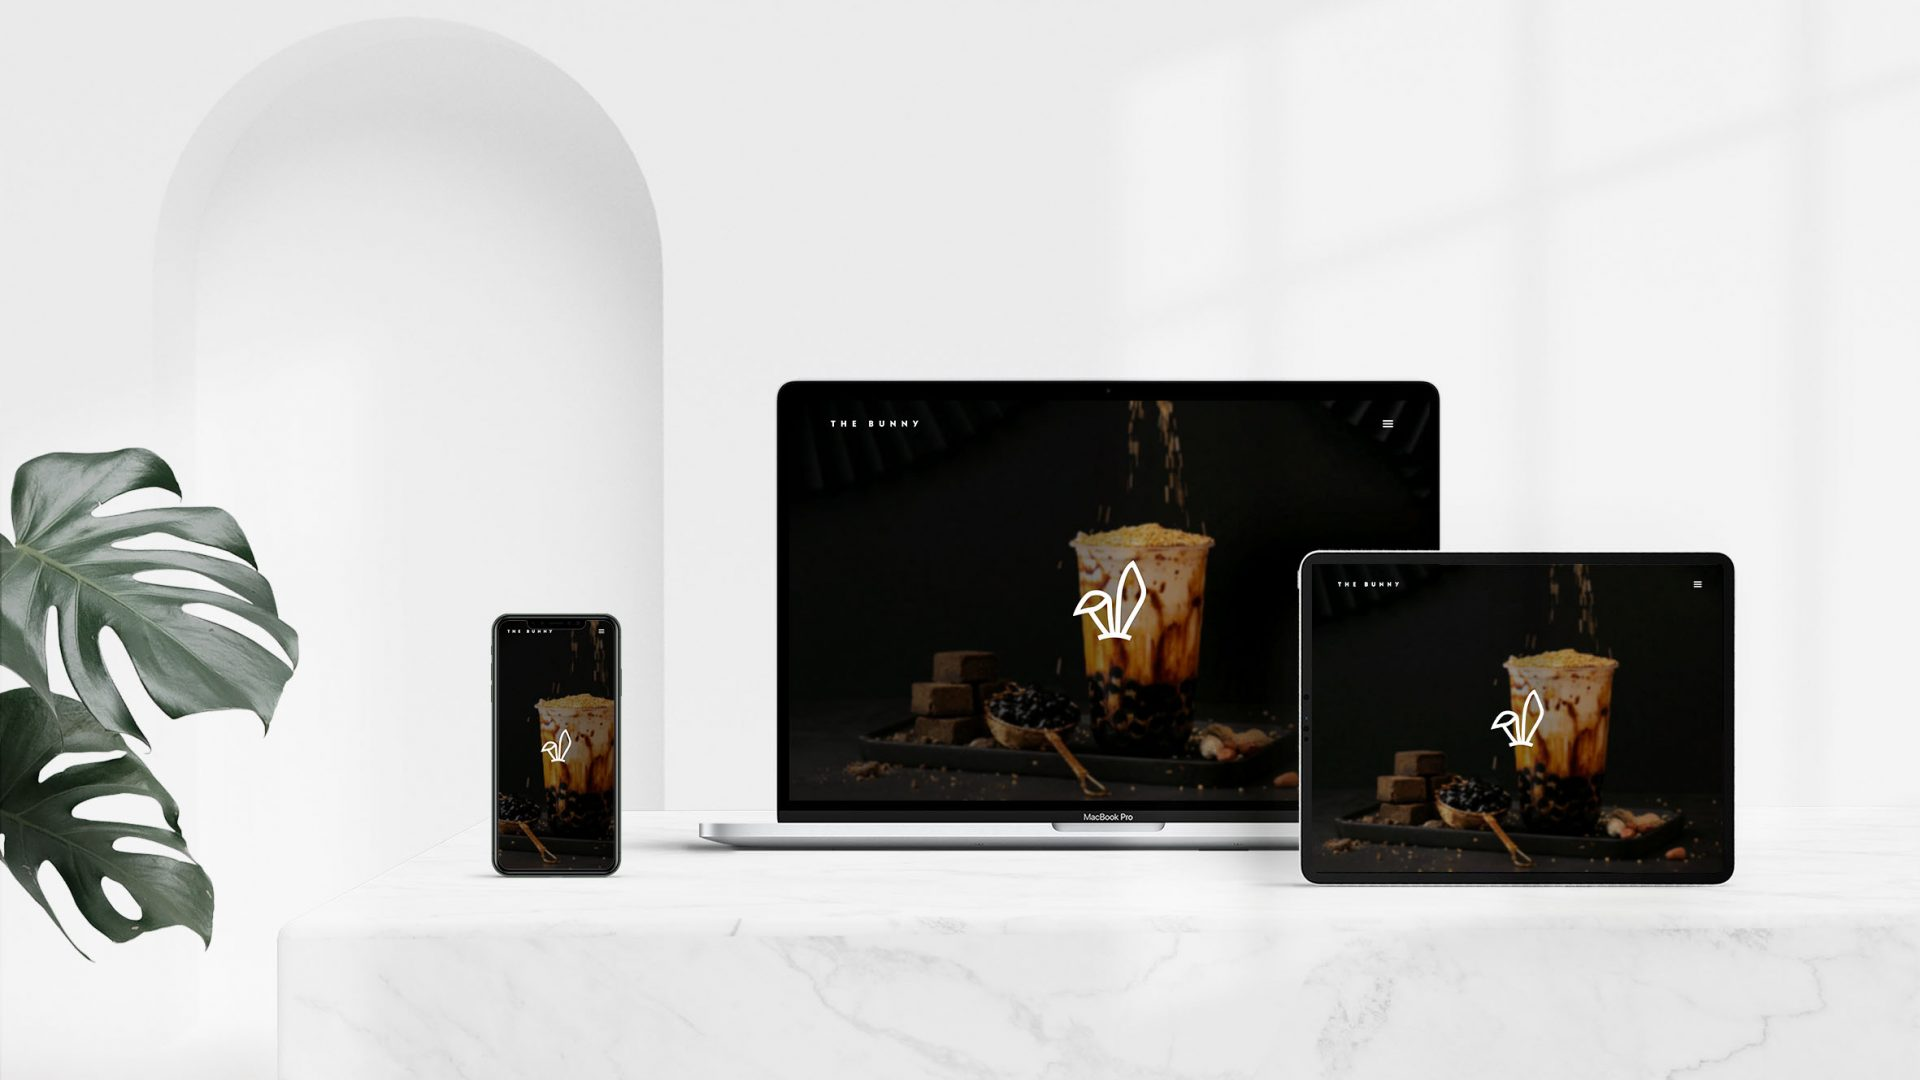 Crate47 Branding forThe Bunny boba tea store – white logo and marque on website on devices